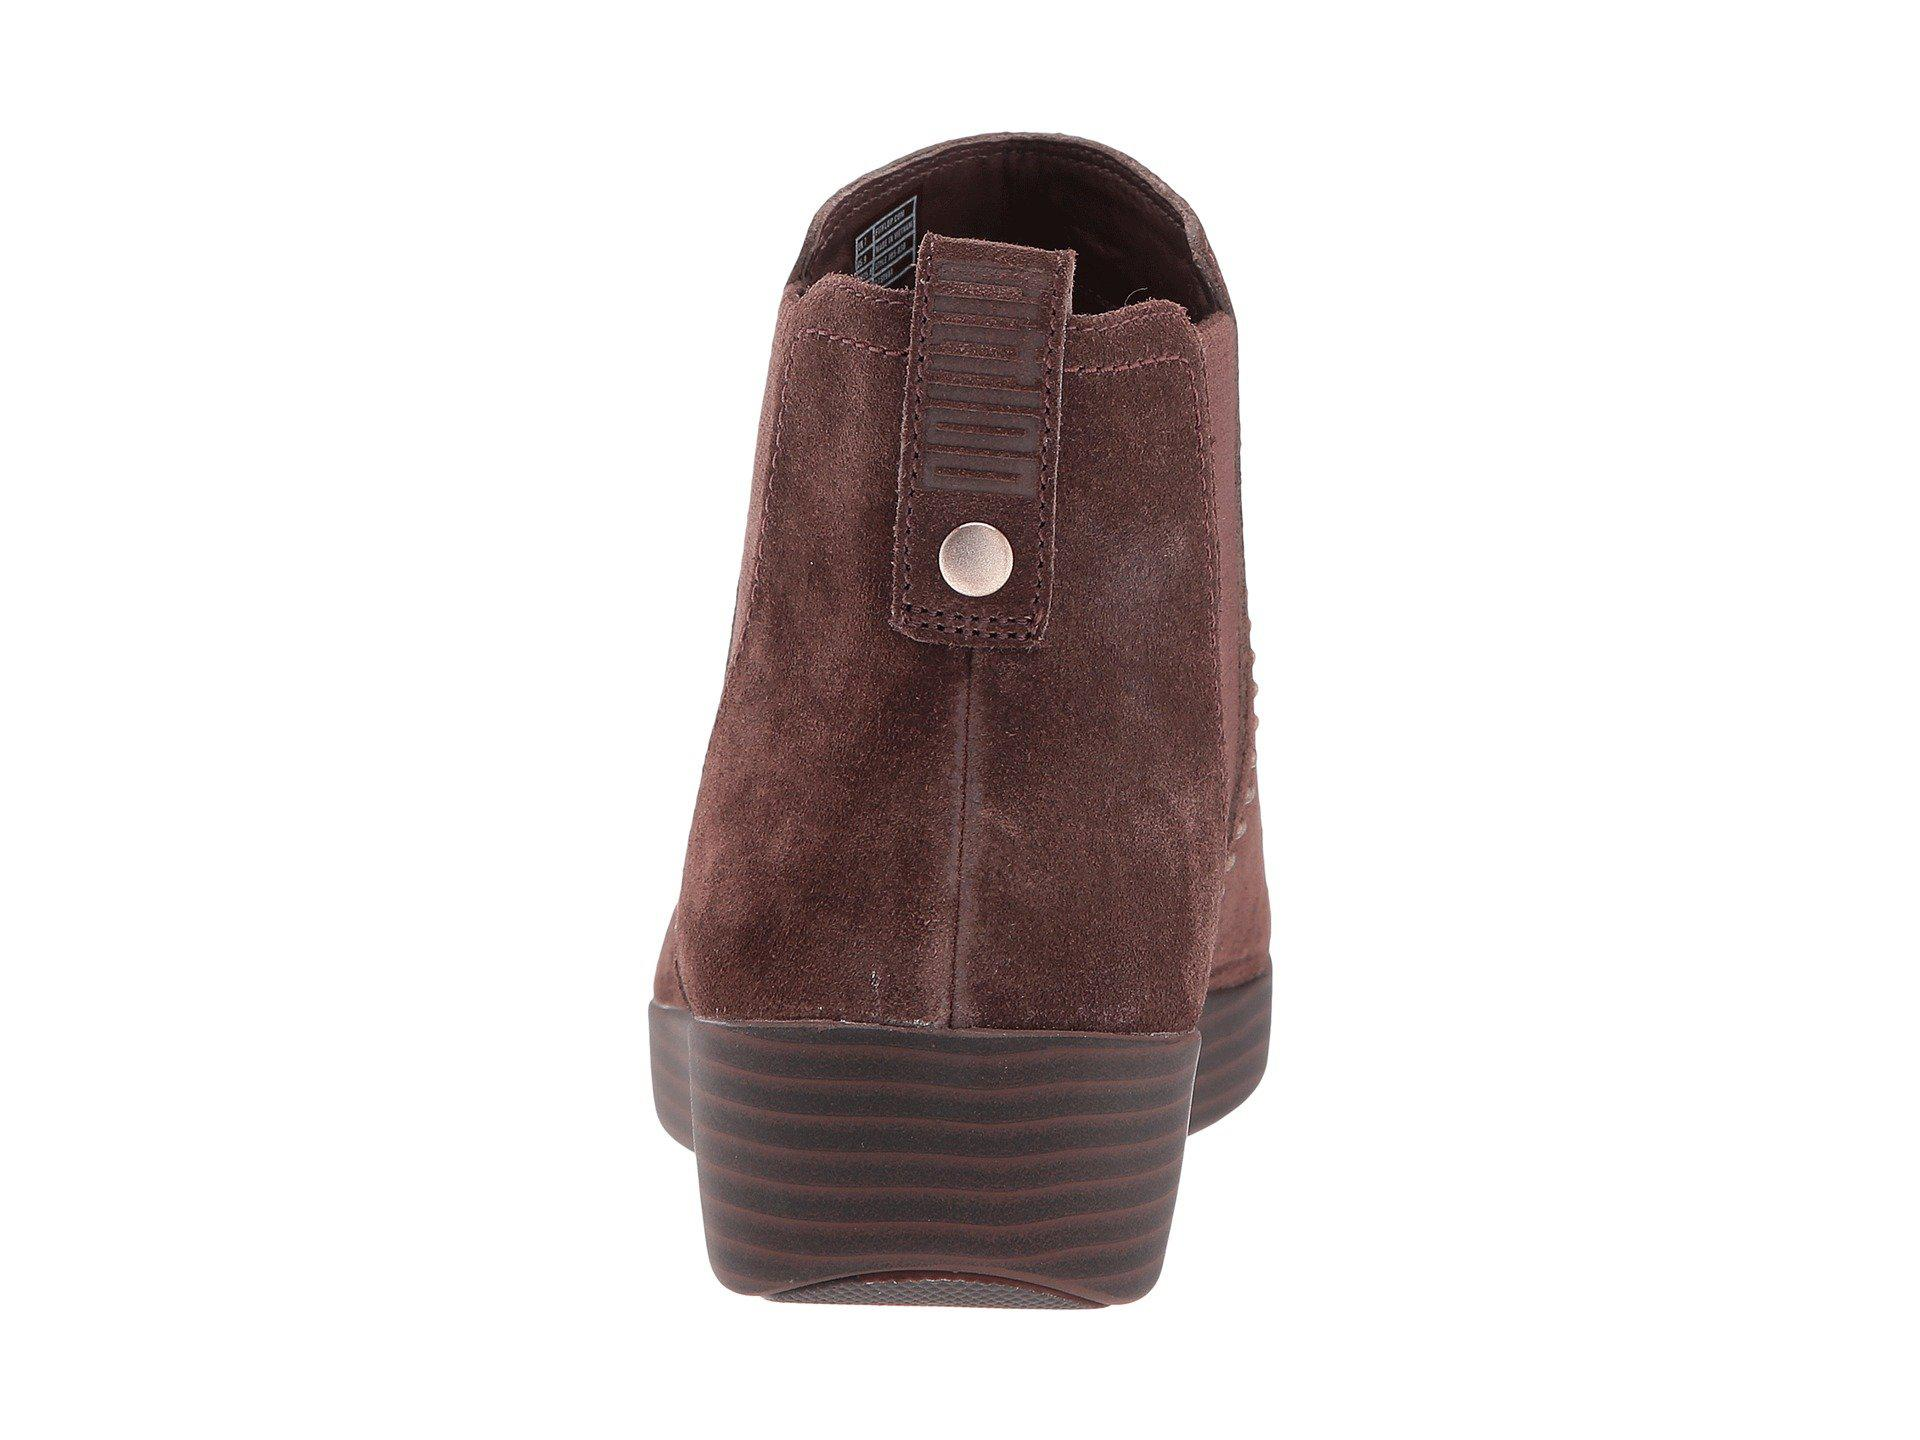 9b82063560 Lyst - Fitflop Superchelsea Suede Boot W  Studs in Brown - Save 22%